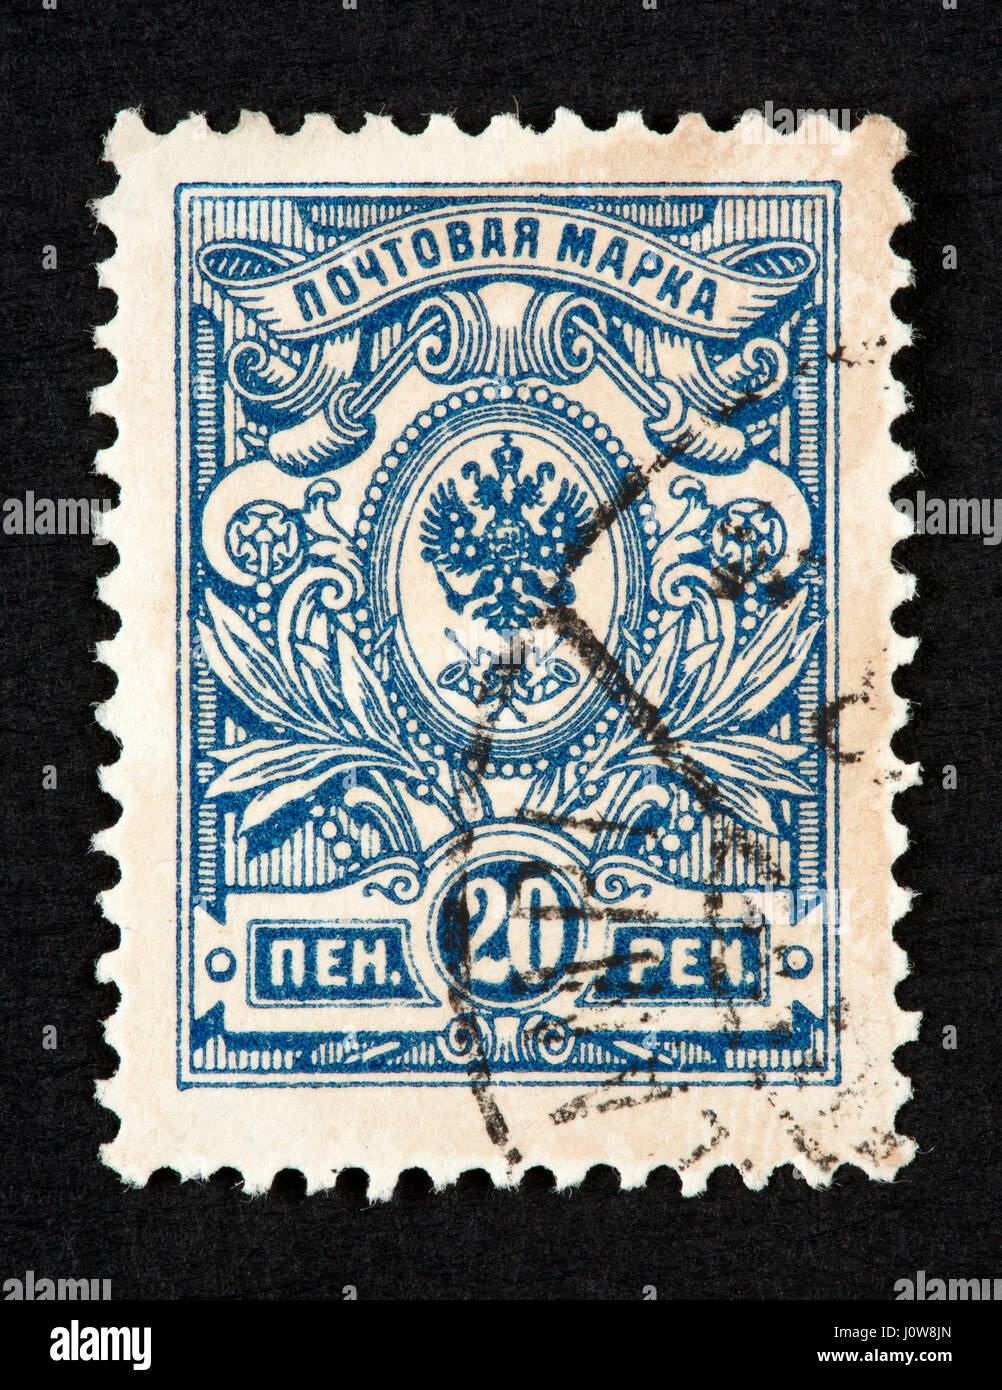 Imperial Russia Postage Stamp Stock Photos & Imperial Russia Postage